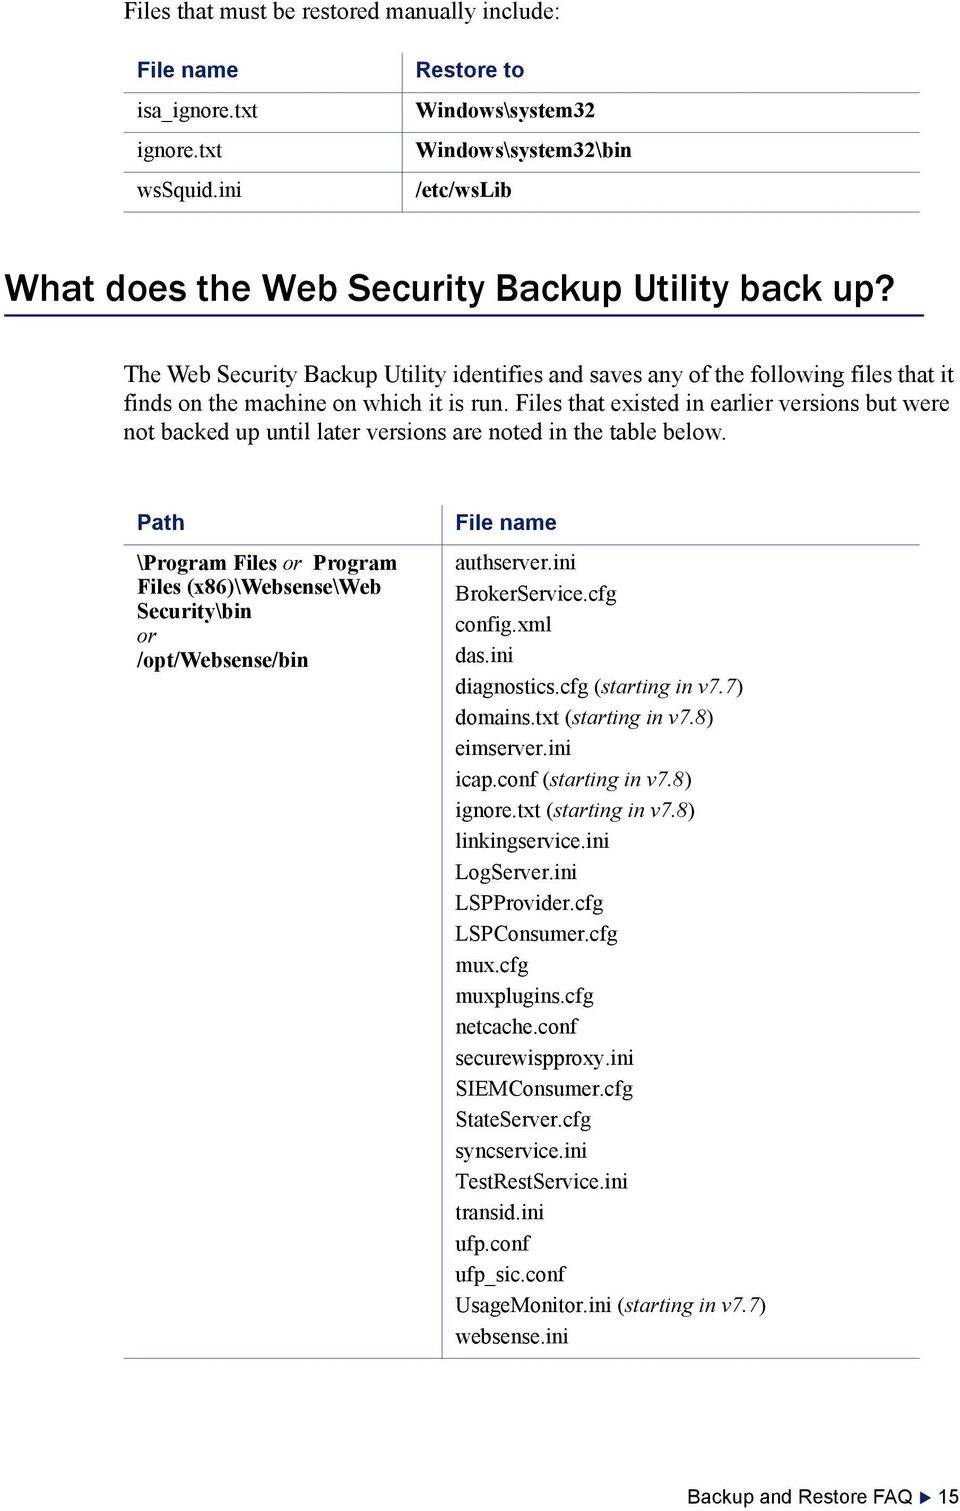 The Web Security Backup Utility identifies and saves any of the following files that it finds on the machine on which it is run.